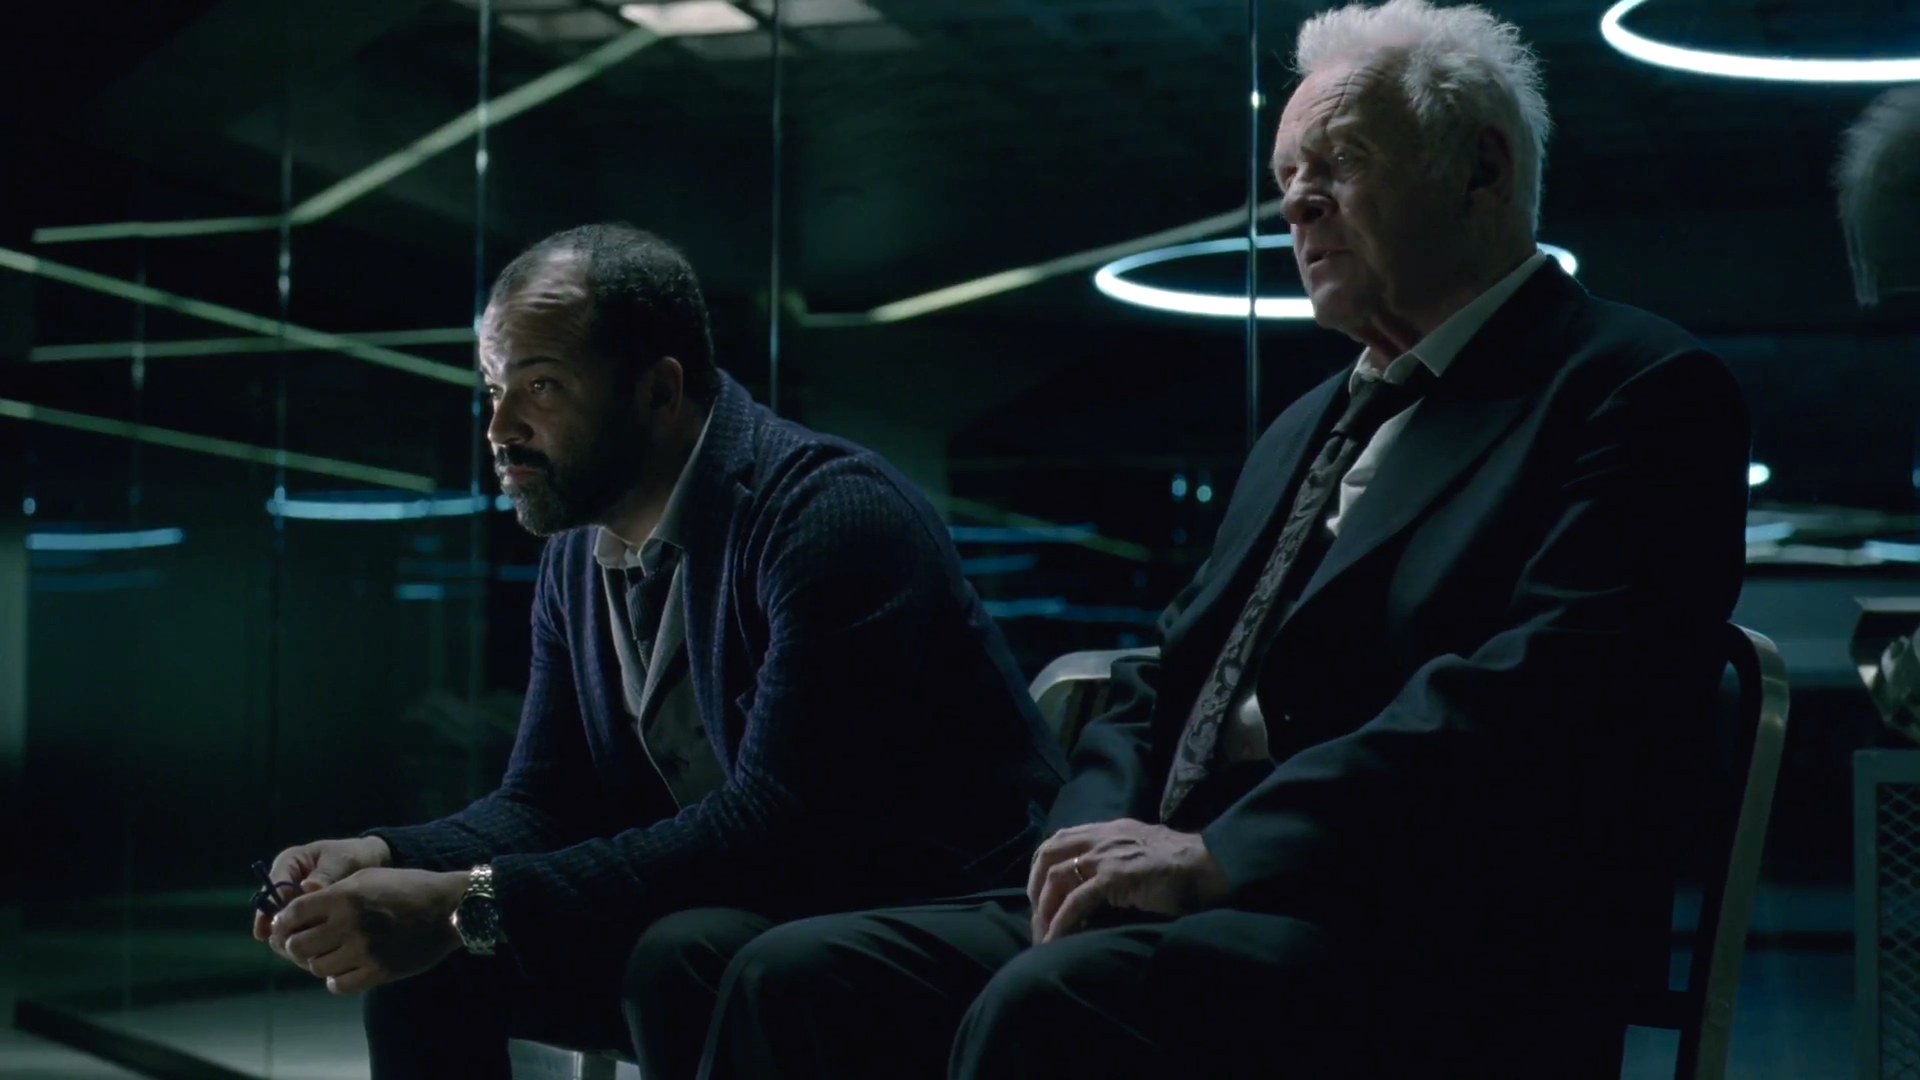 Jeffrey Wright as Bernard Lowe and Anthony Hopkins as Dr. Robert Ford